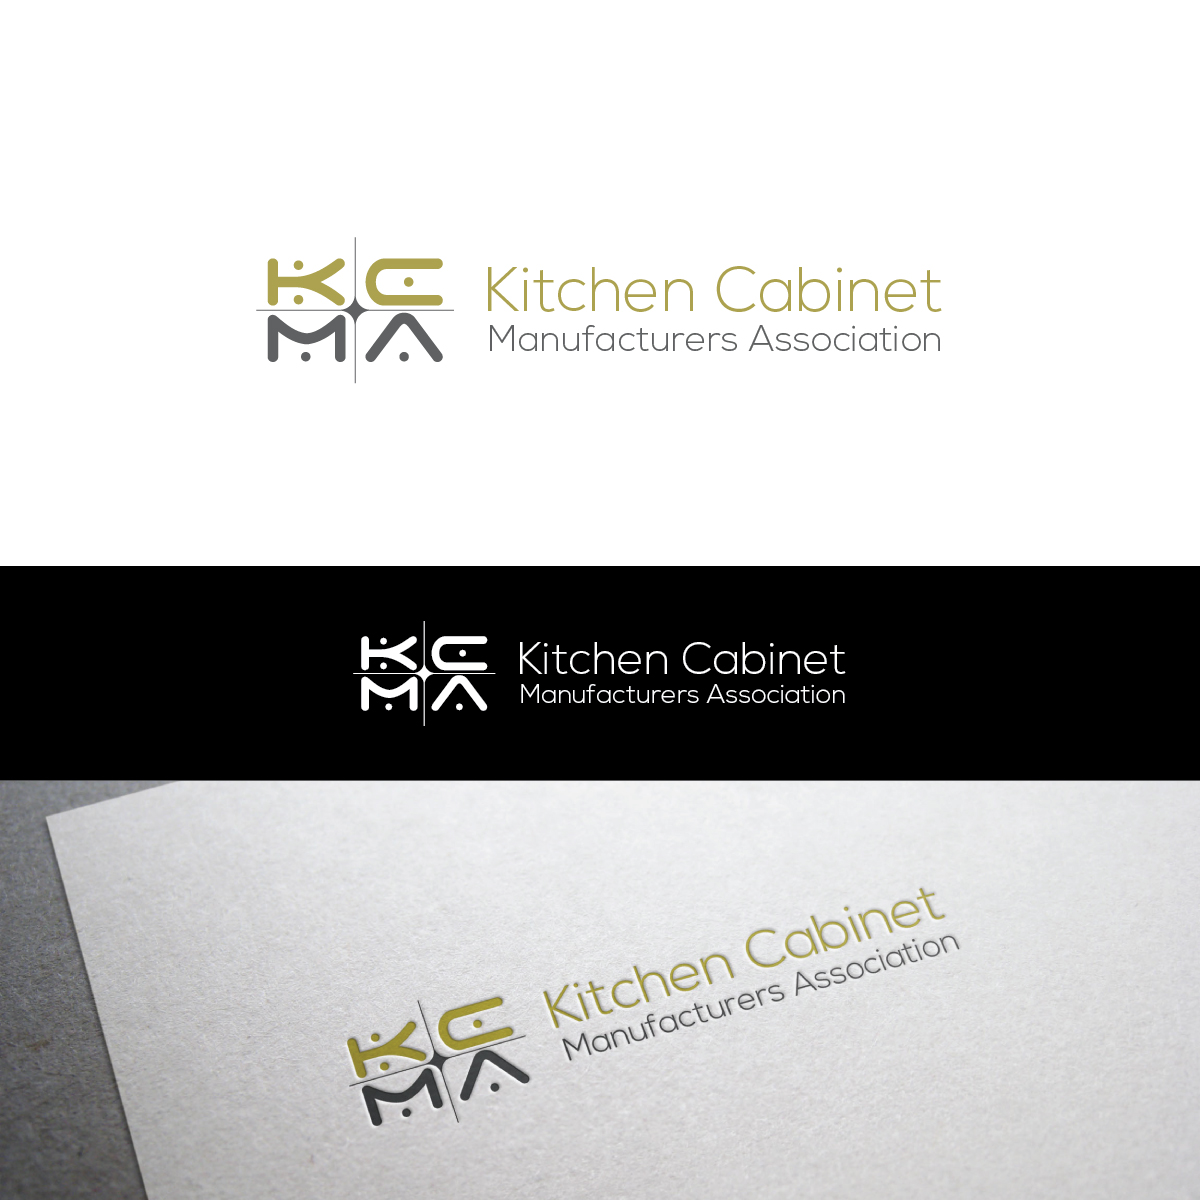 Trade Logo Design For Kitchen Cabinet Manufacturers Association By